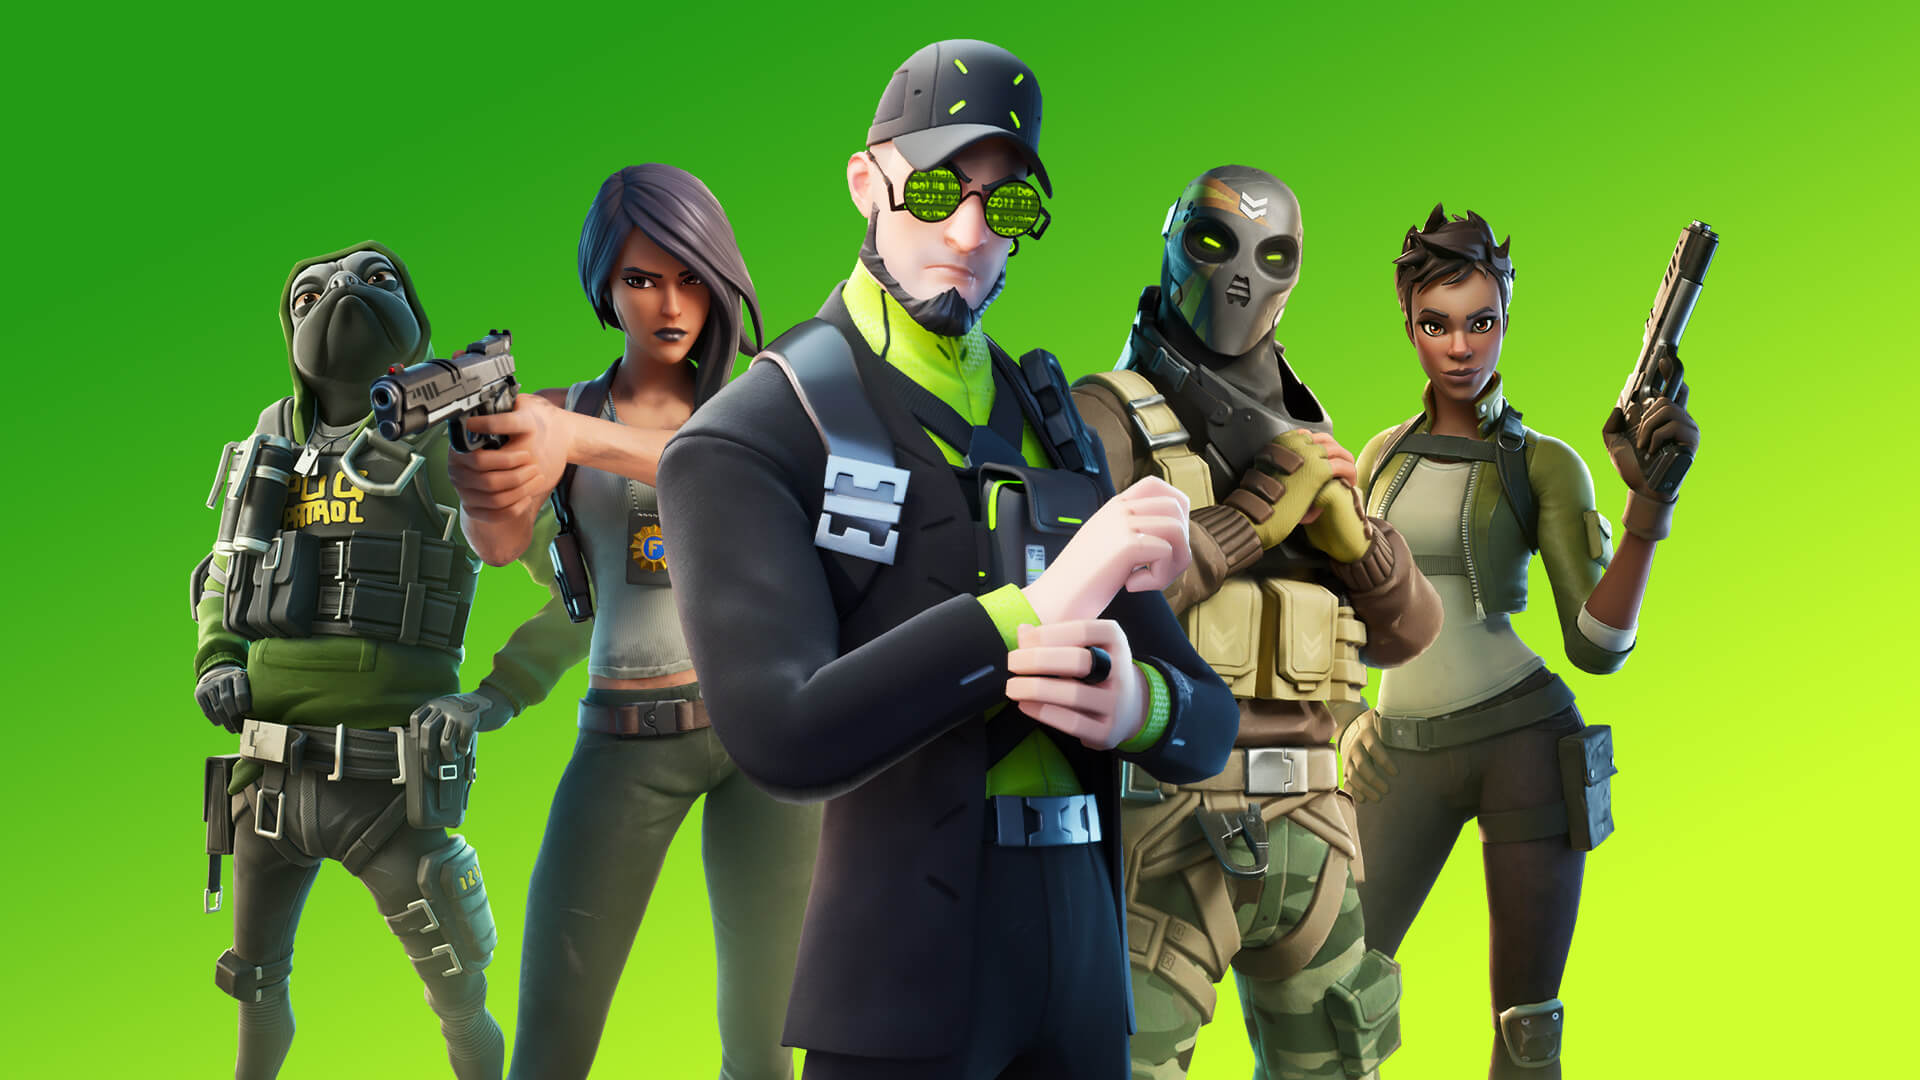 Fortnite%2Fblog%2Ffortnite-chapter-2-season-3-arrives-june-11%2FChapter2_Season2_Extension-Header-1920x1080-1386bd3b83cc6fedb4696ccdf9dda43b931616db.jpg